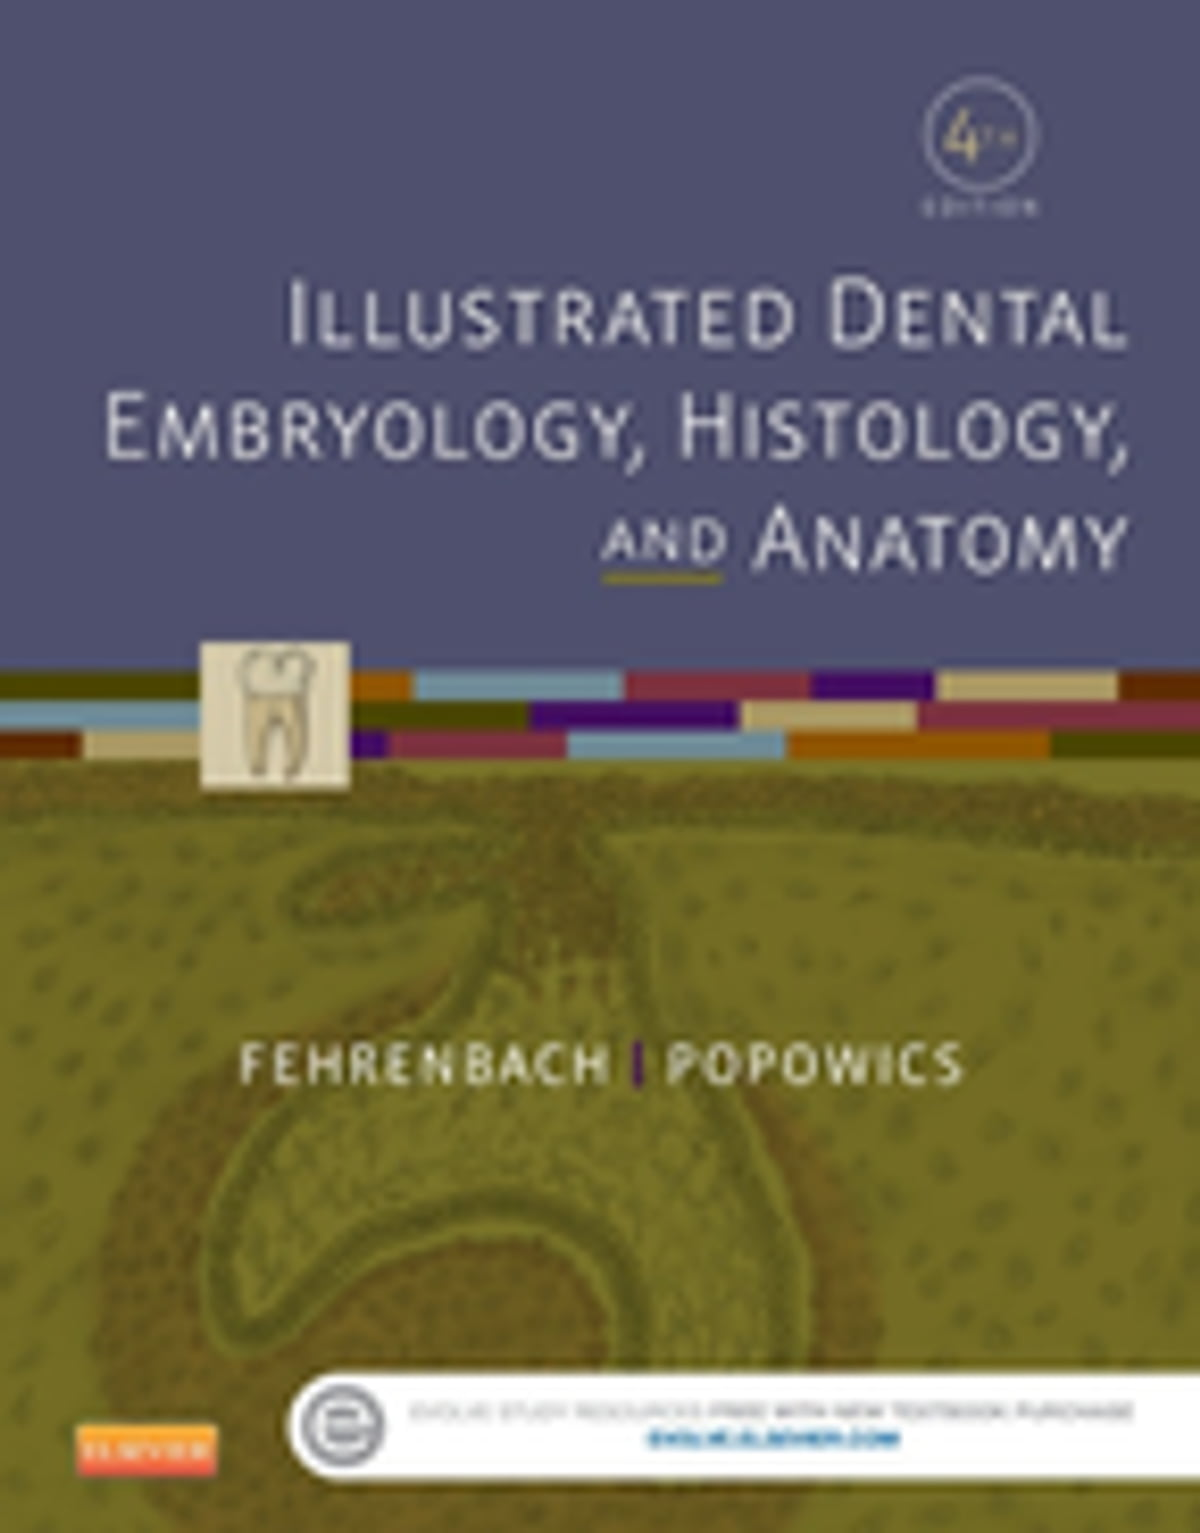 Illustrated Dental Embryology, Histology, and Anatomy - E-Book eBook ...